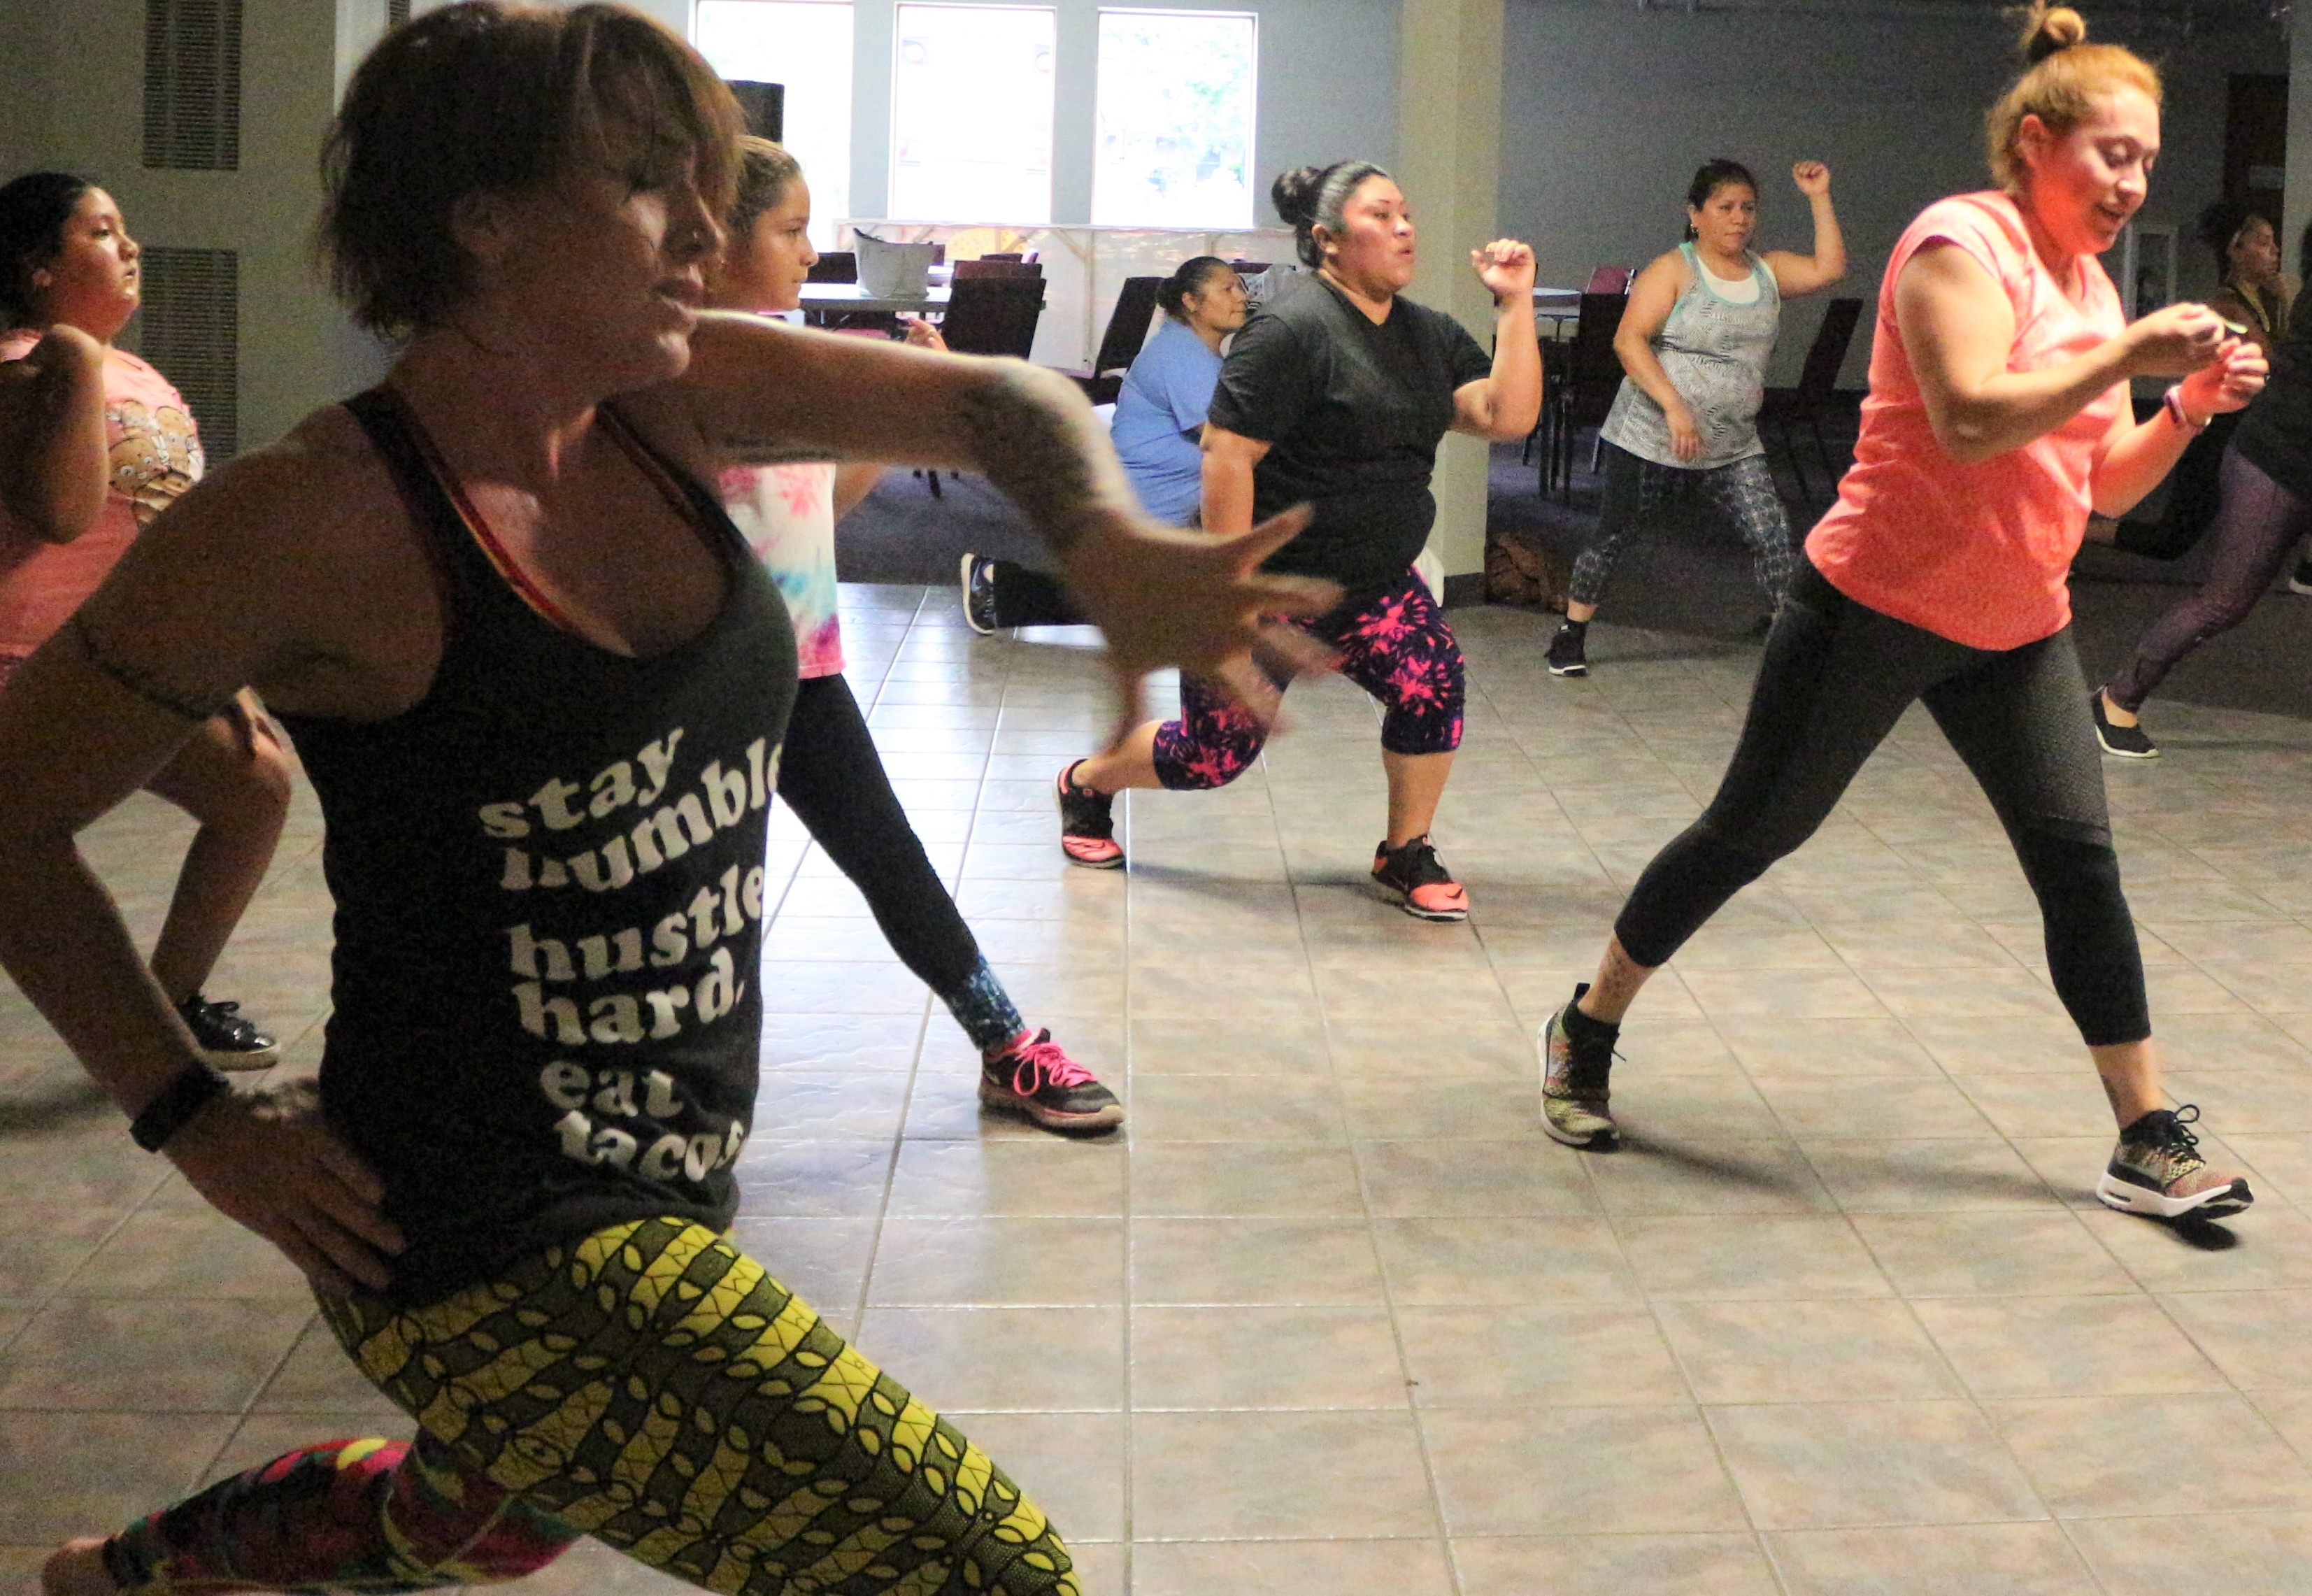 Heather Sand leads a Zumba class